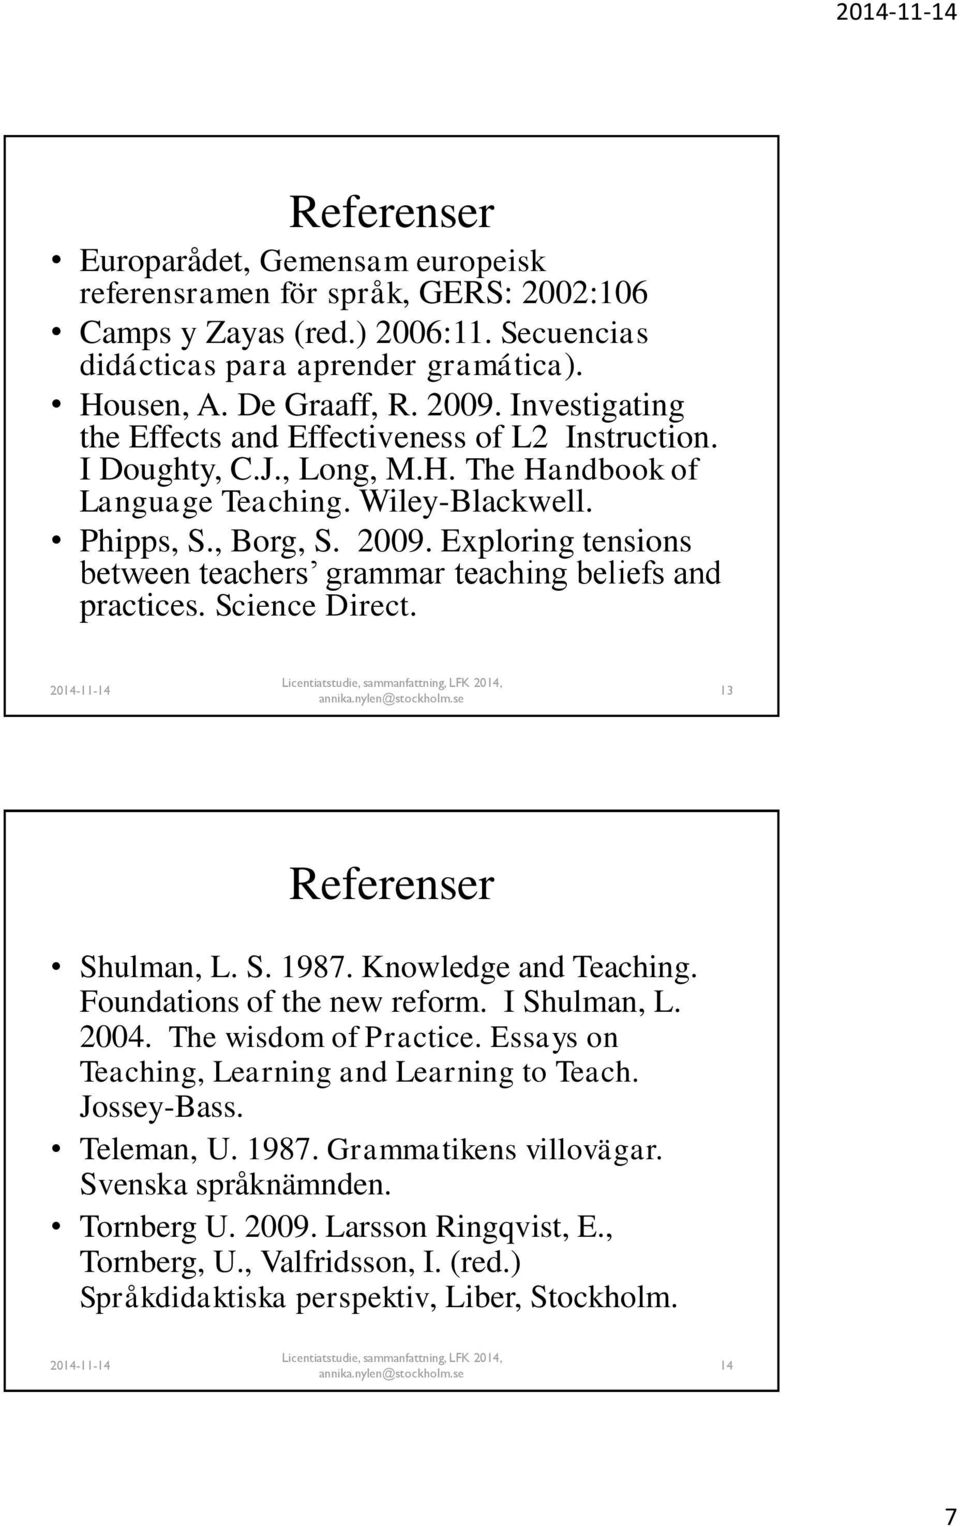 Exploring tensions between teachers grammar teaching beliefs and practices. Science Direct. 13 Referenser Shulman, L. S. 1987. Knowledge and Teaching. Foundations of the new reform. I Shulman, L.